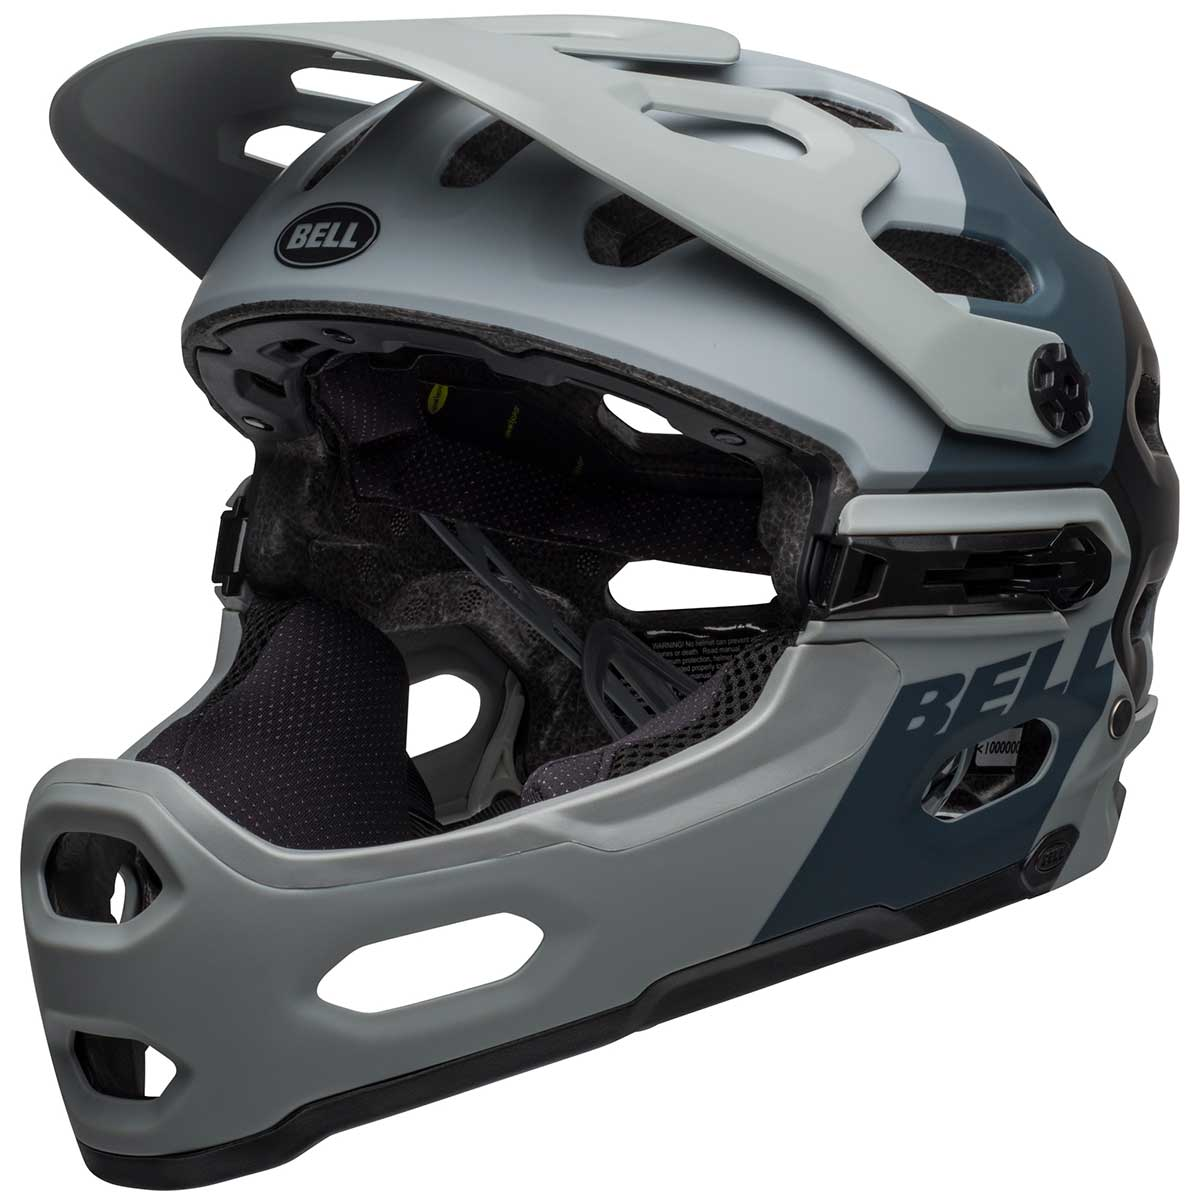 Bell Super 3R MIPS bike helmet in Downdraft Matte Grey and Gunmetal